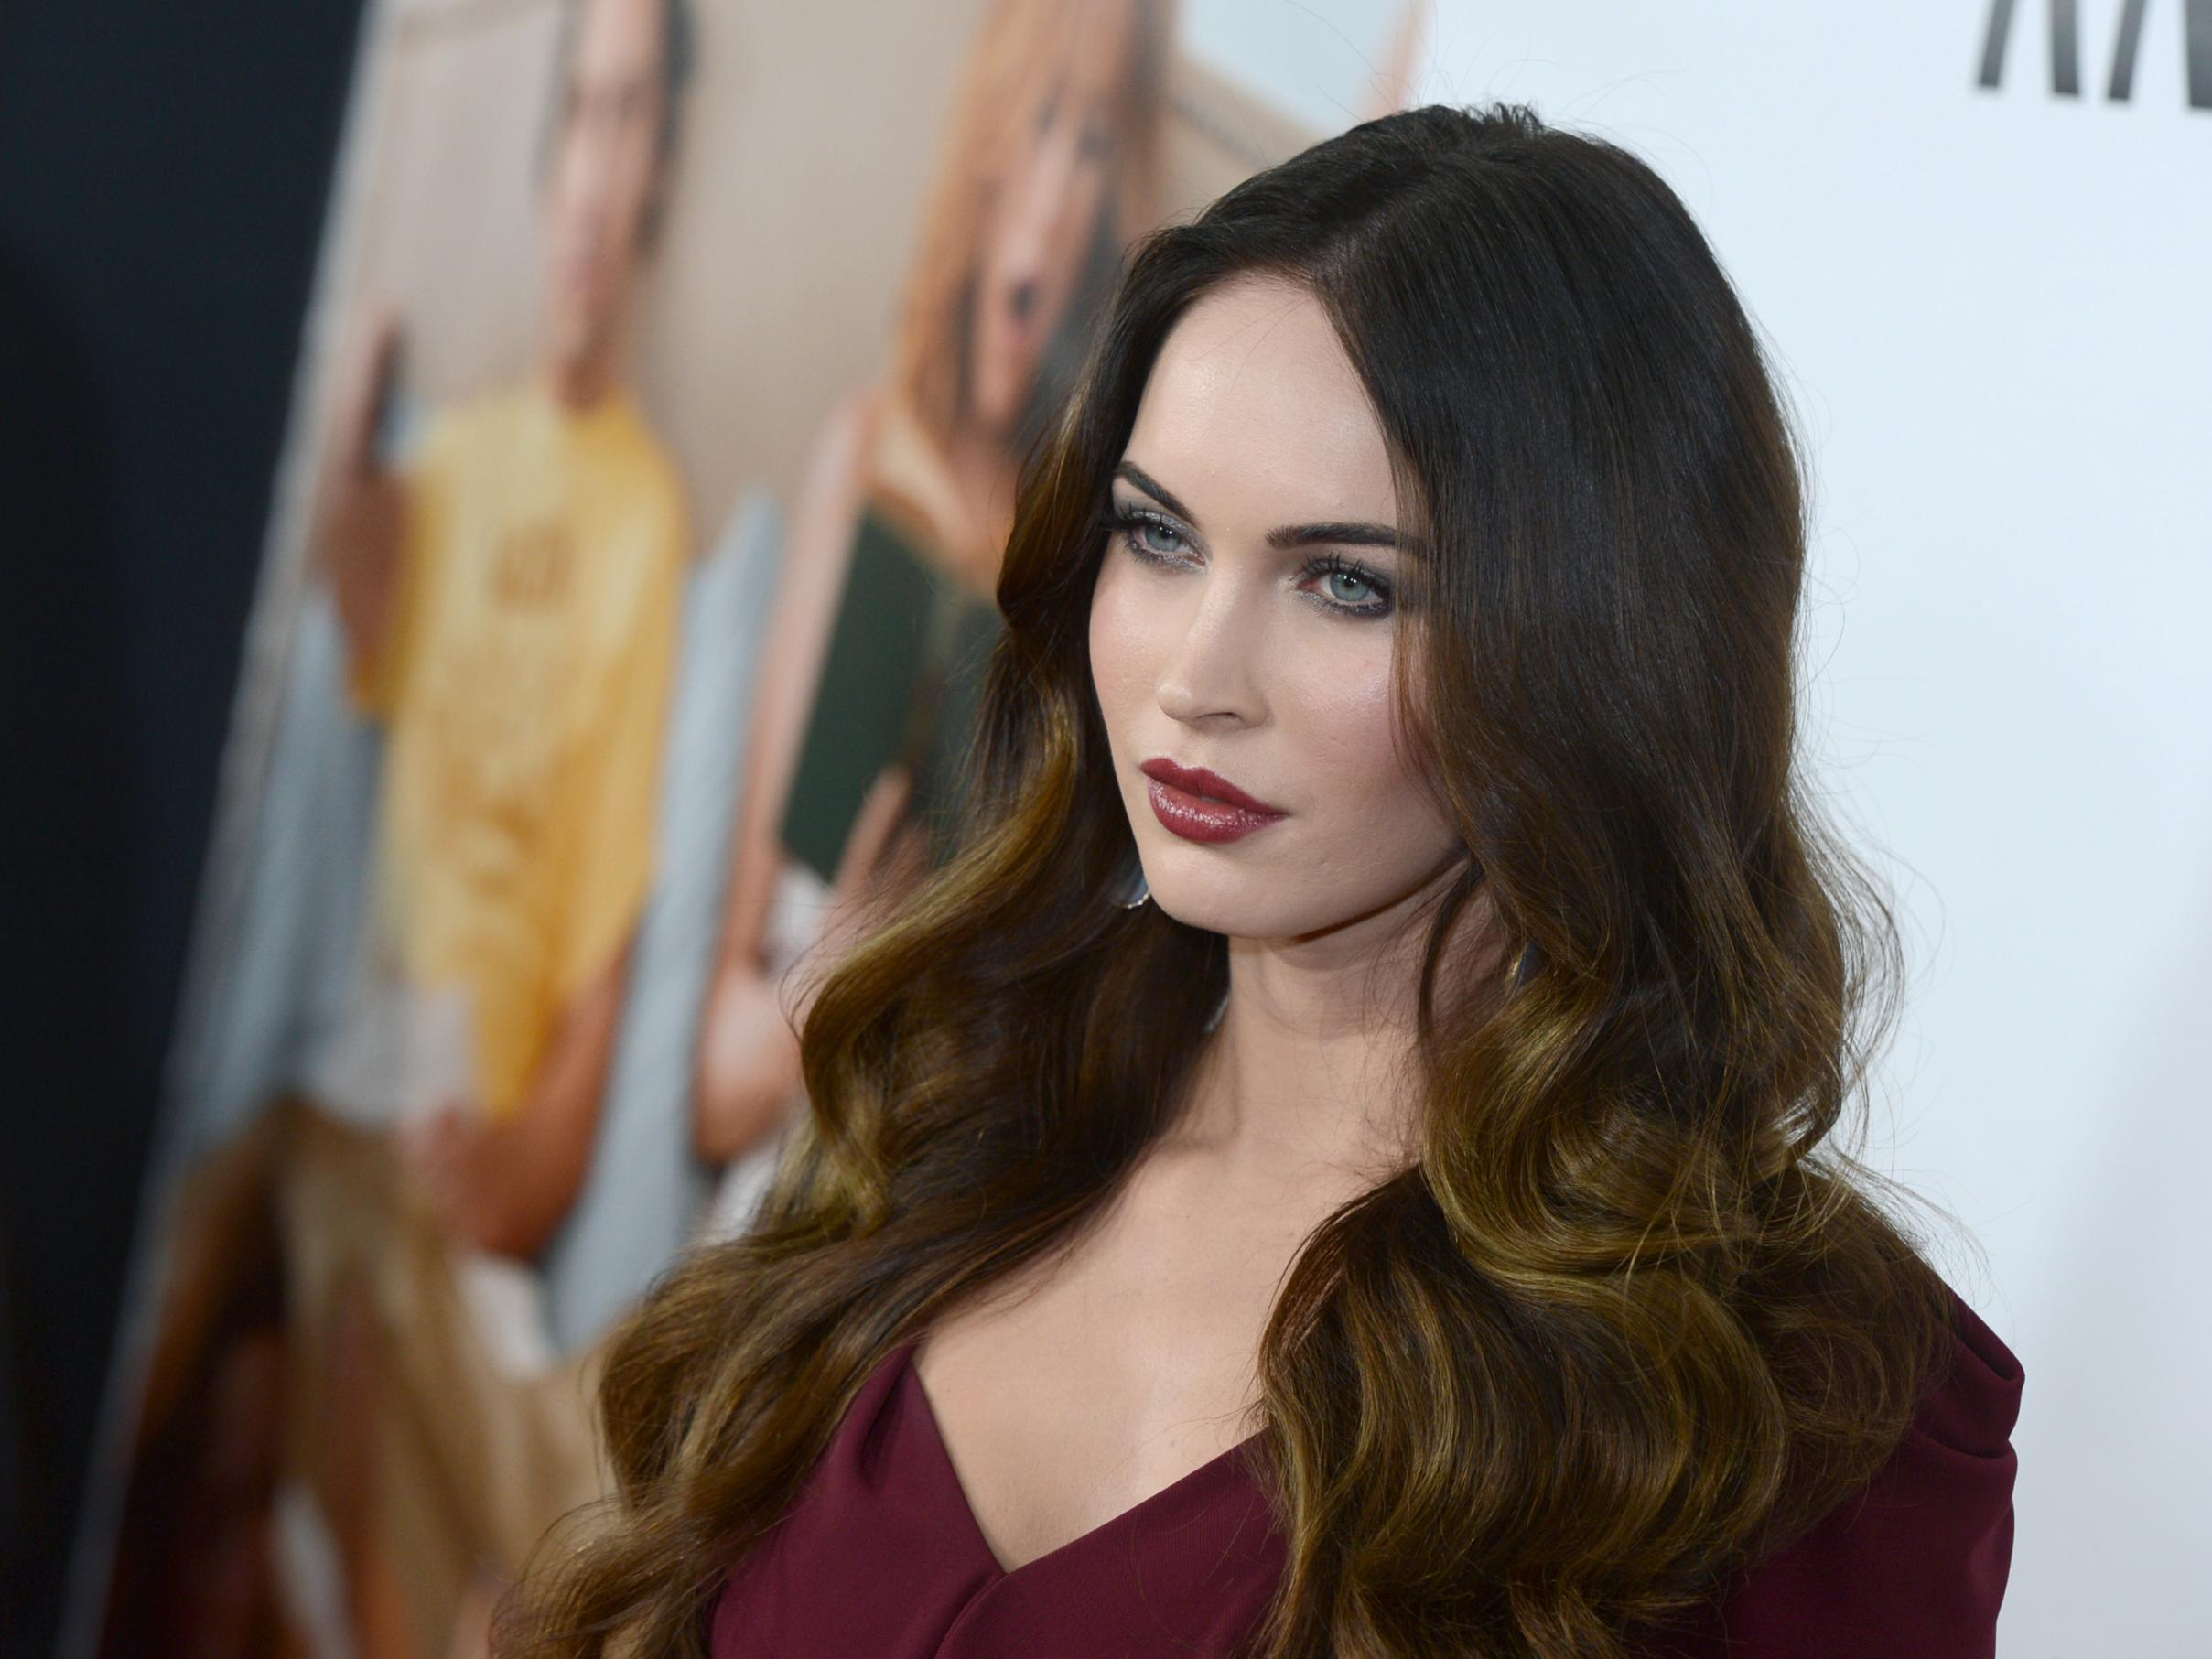 Megan Fox suffered 'psychological breakdown' after being sexualised in Hollywood